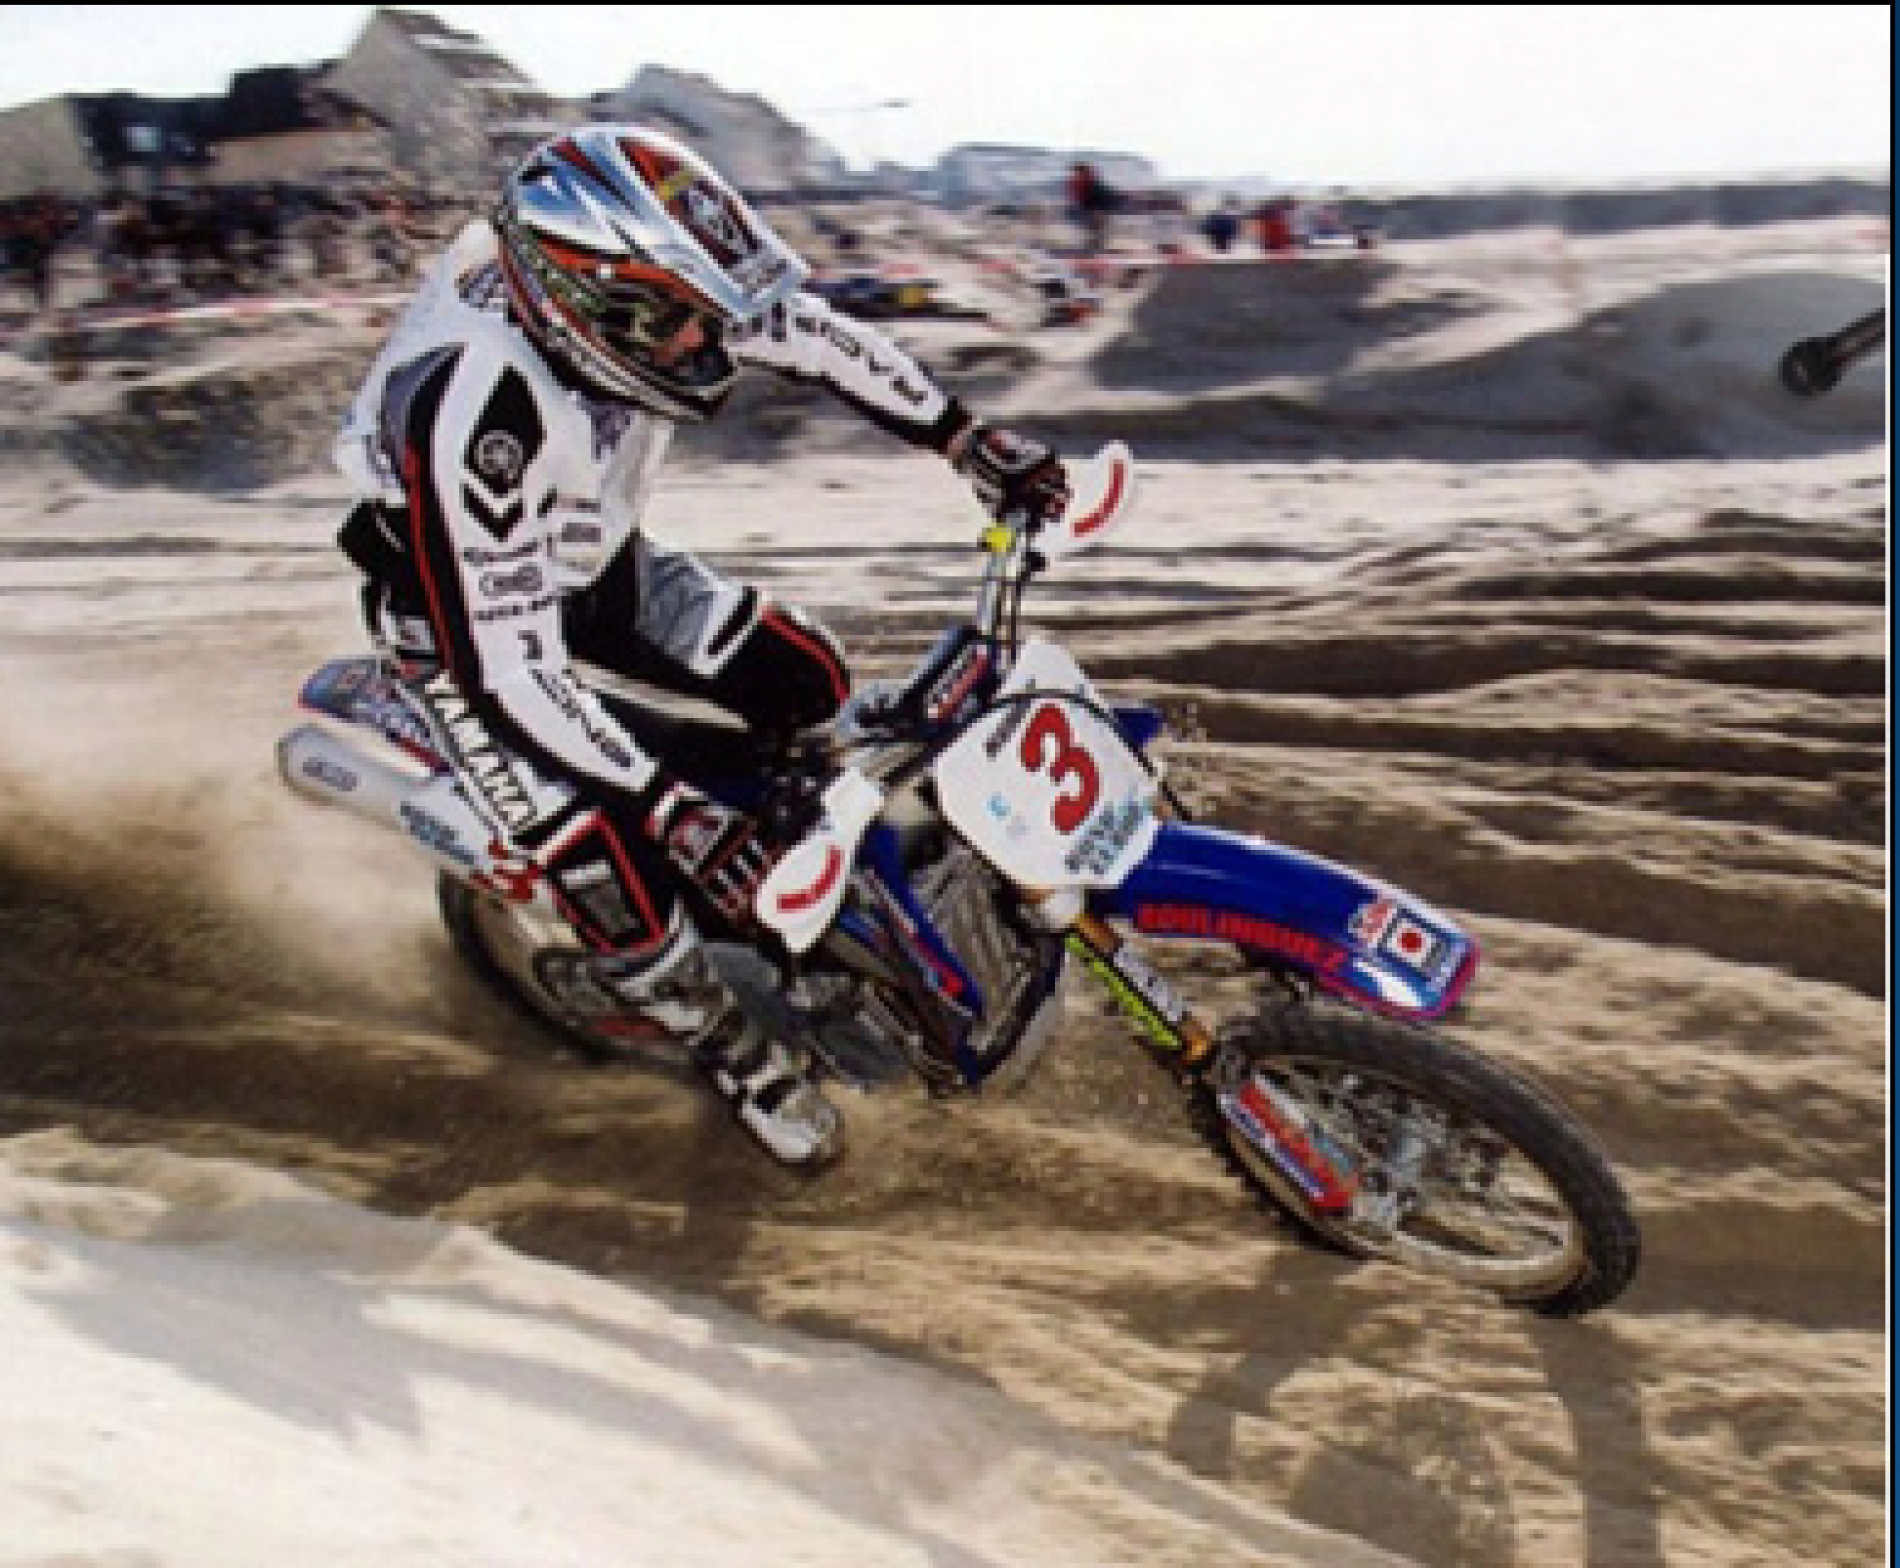 The DAVID HAUQUIER motocross school